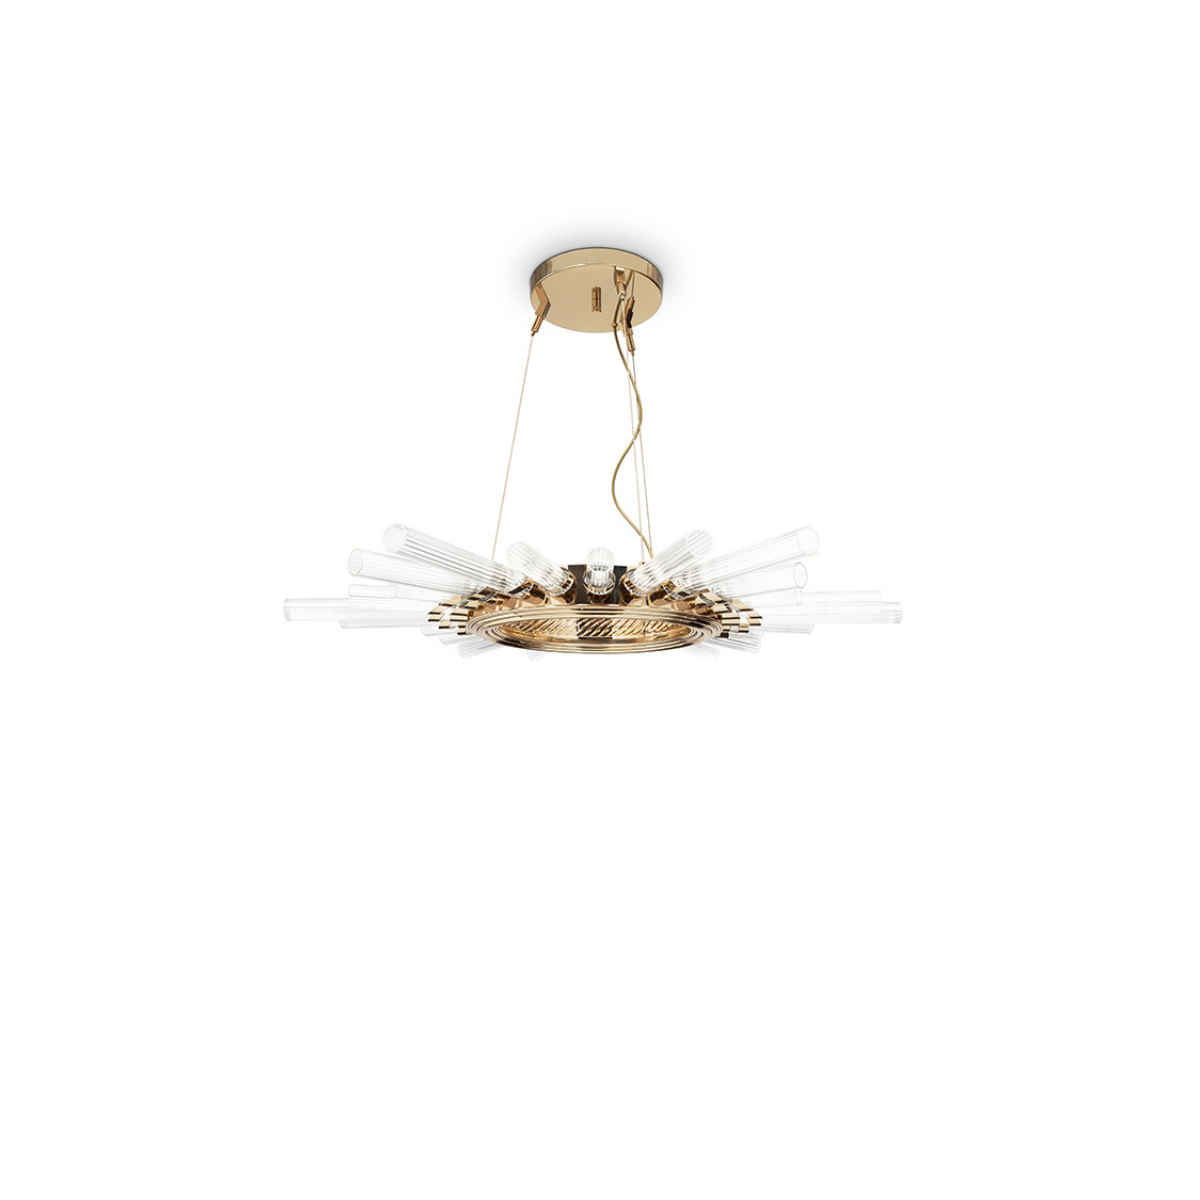 Majestic Suspension Lamp by Luxxu Covet Lighting